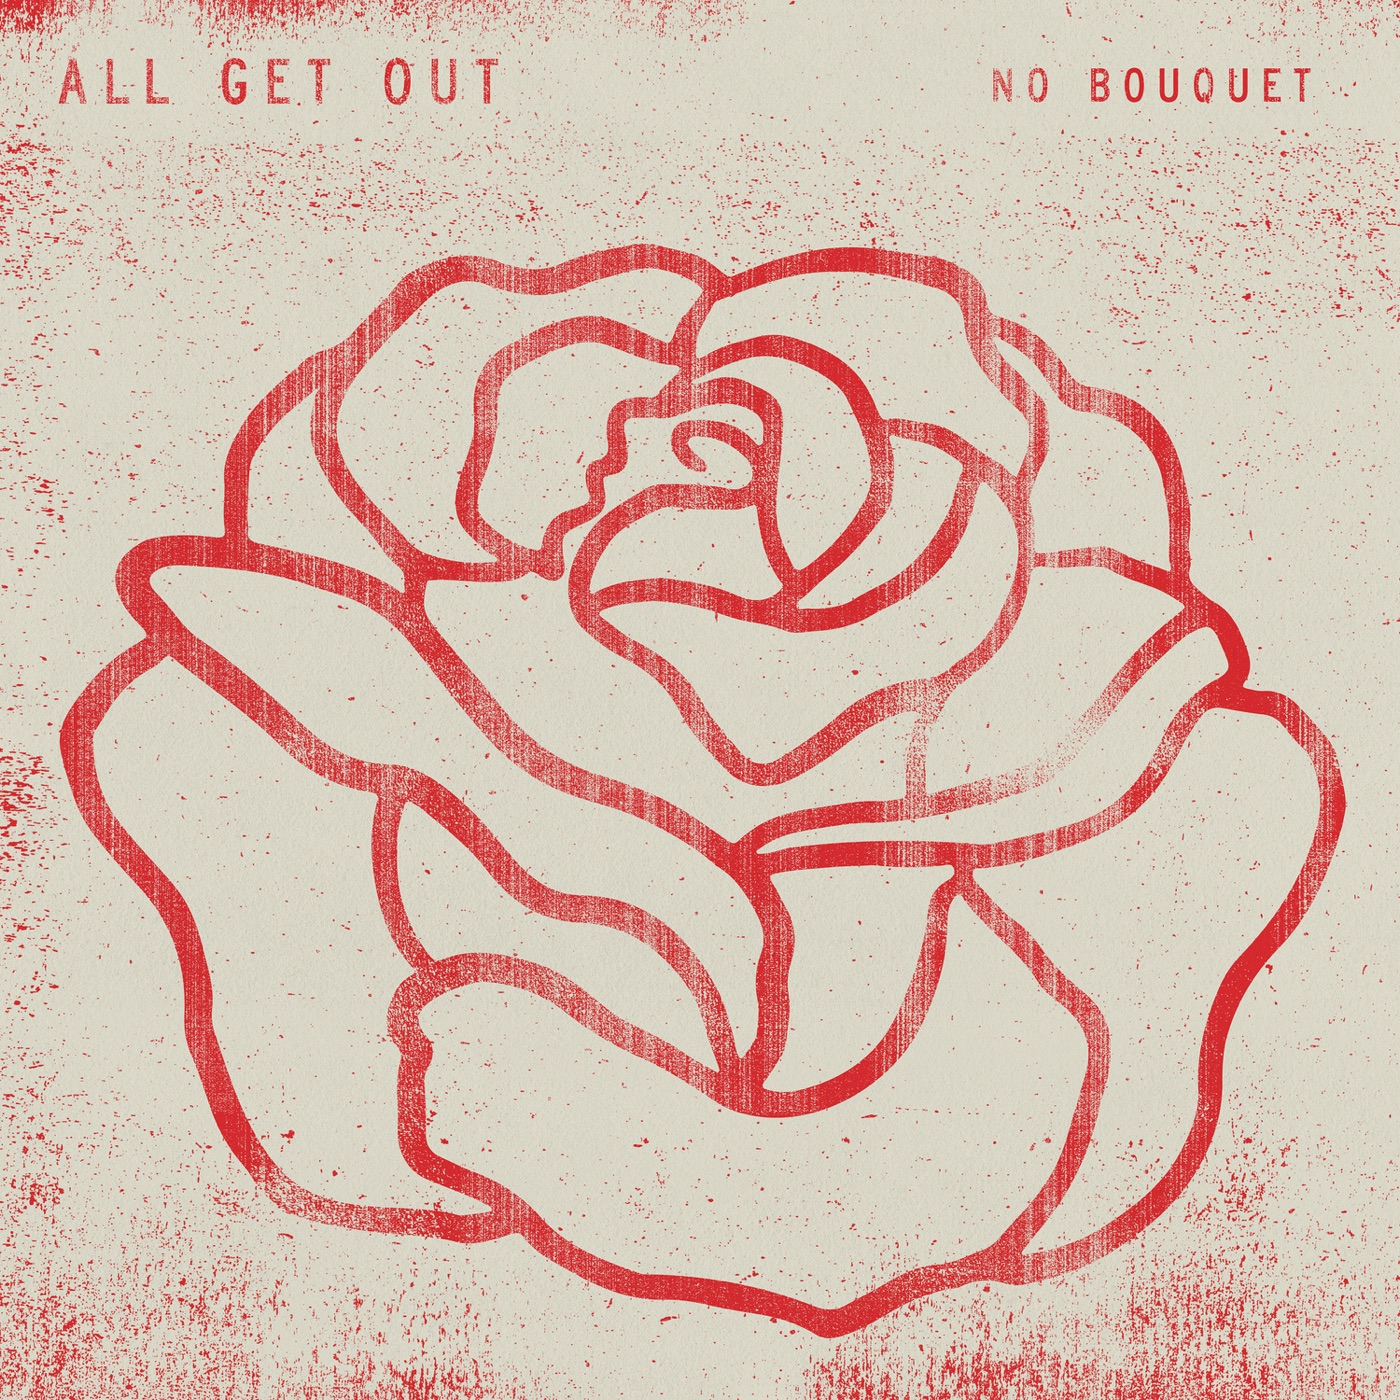 All Get Out - God Damn [single] (2018)